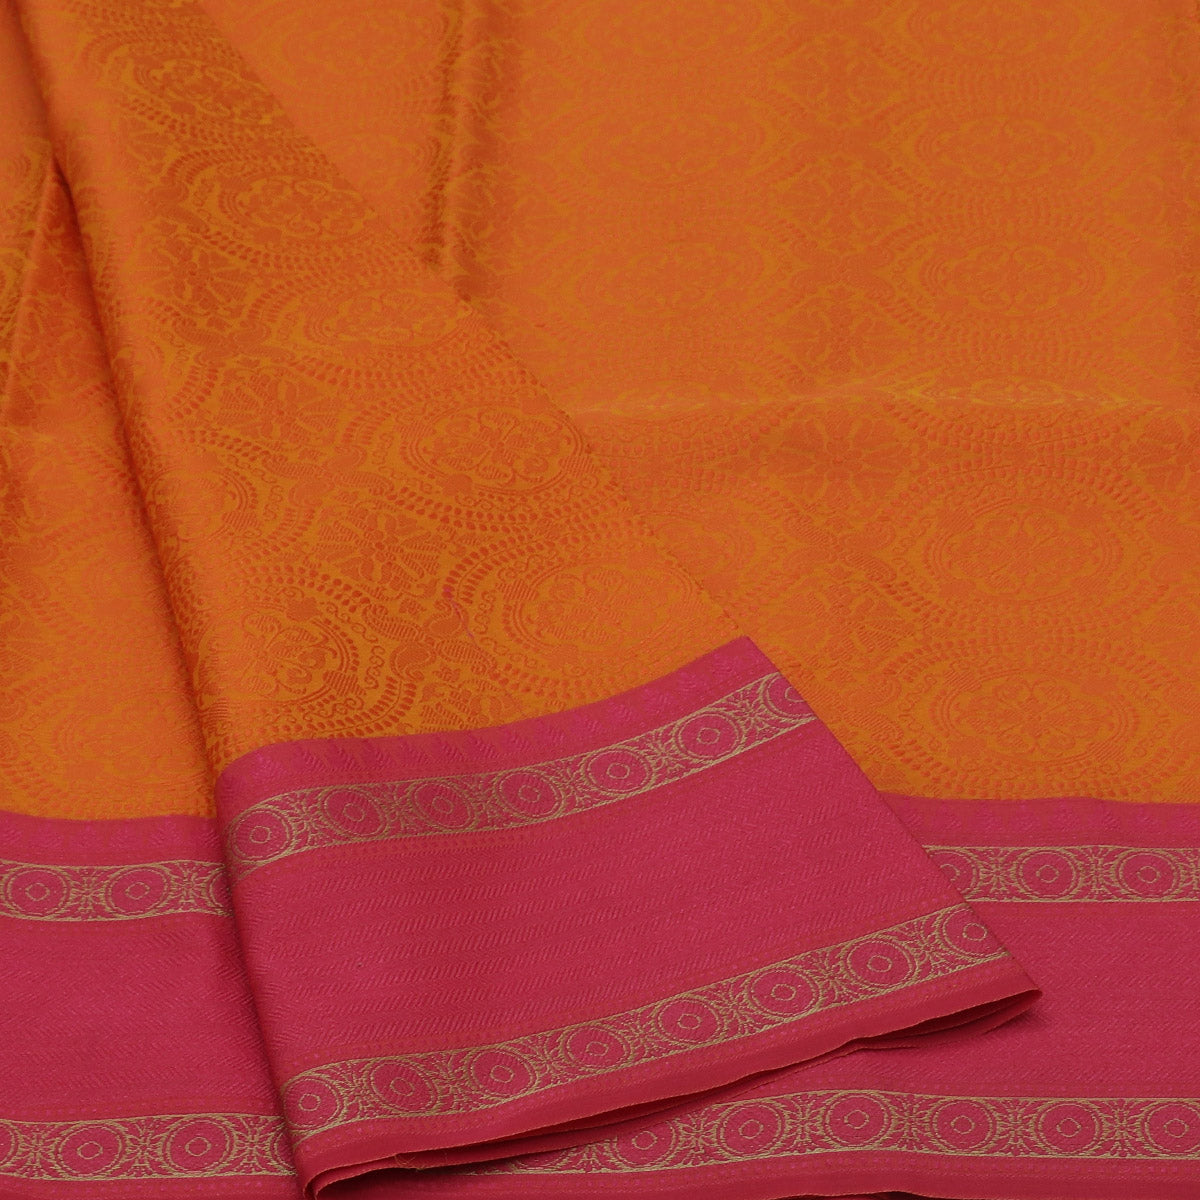 Banarasi Kora Muslin Saree Orange and Pink with Round border